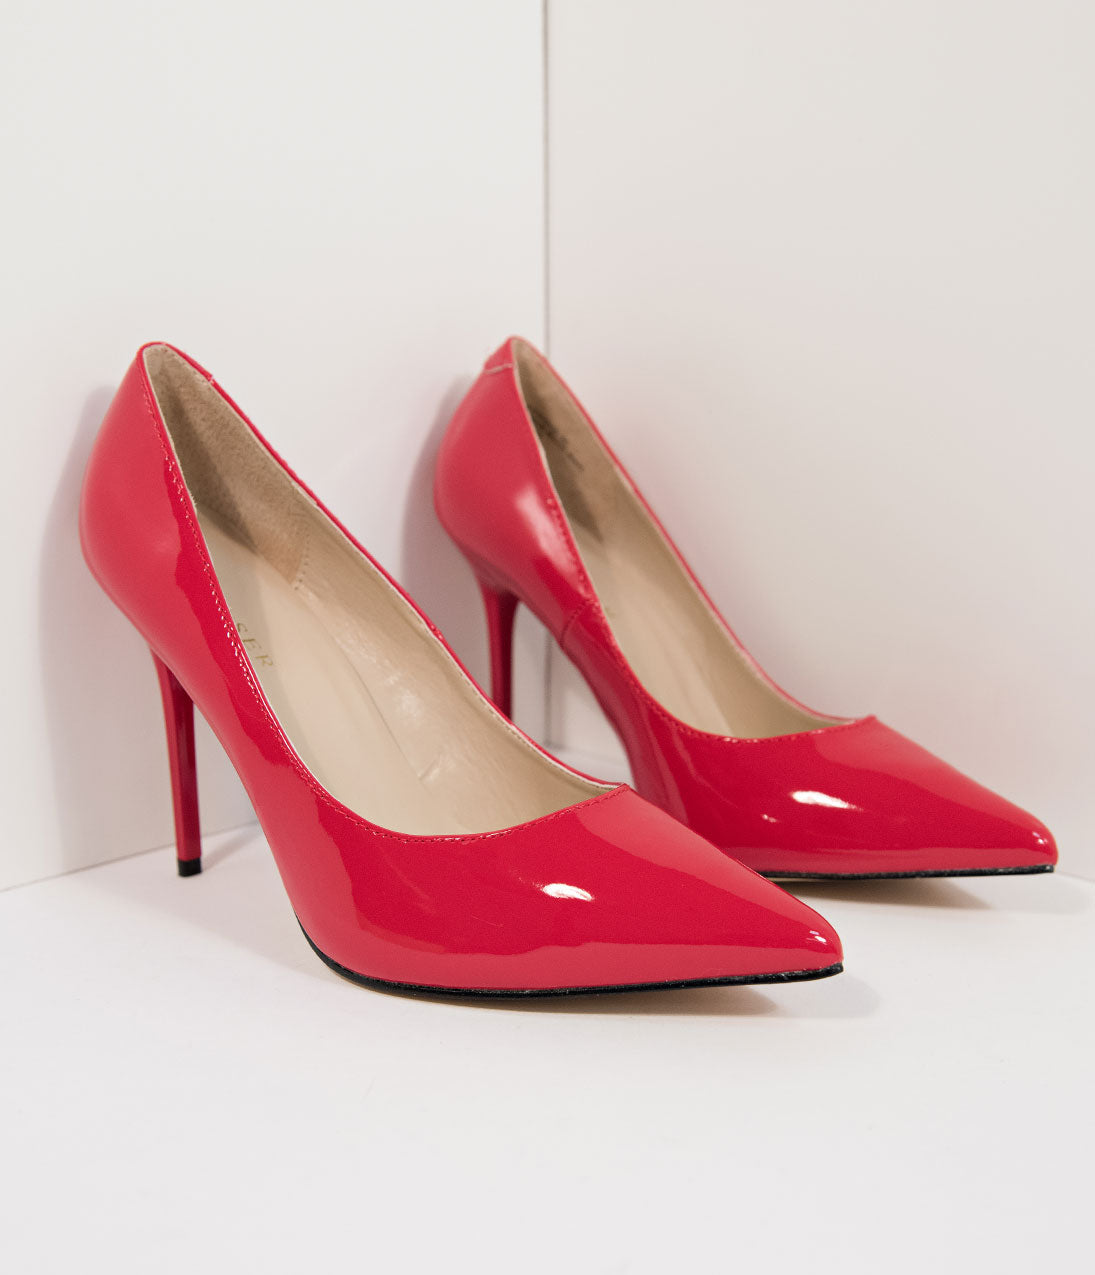 80s Shoes, Sneakers, Jelly flats Red Patent Leatherette Pointed Toe Pumps $68.00 AT vintagedancer.com